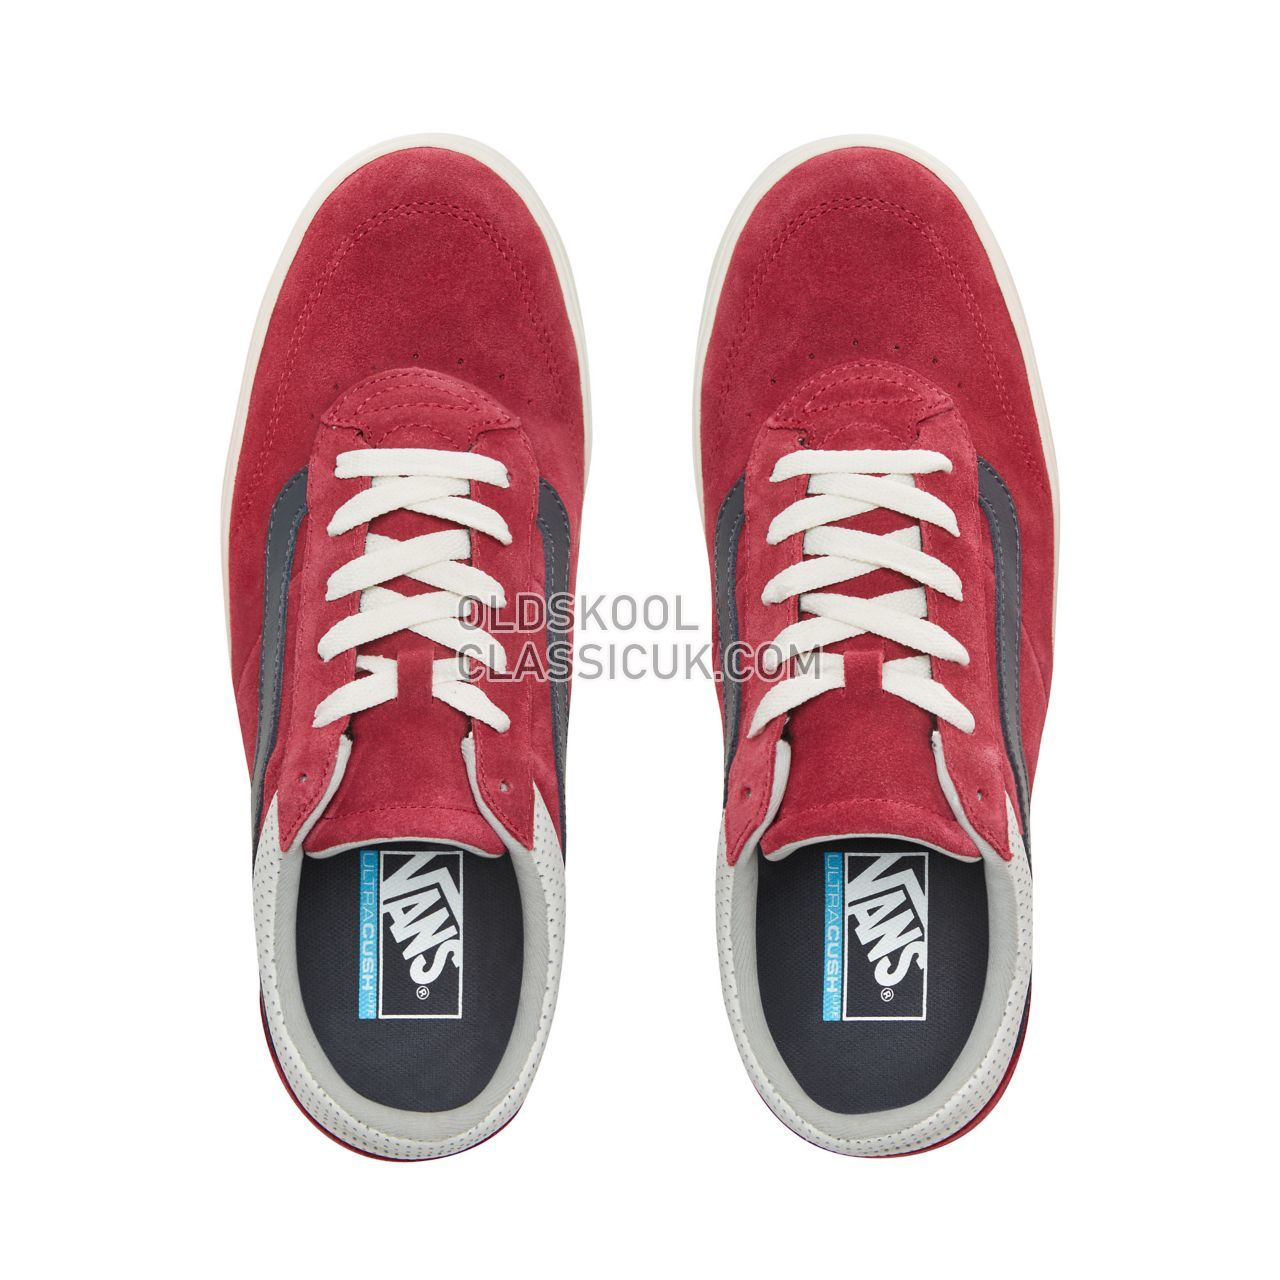 Vans Staple Ultracush Cruze Sneakers Mens (Suede) Rumba Red/Marshmallow VN0A3WLZVTZ Shoes